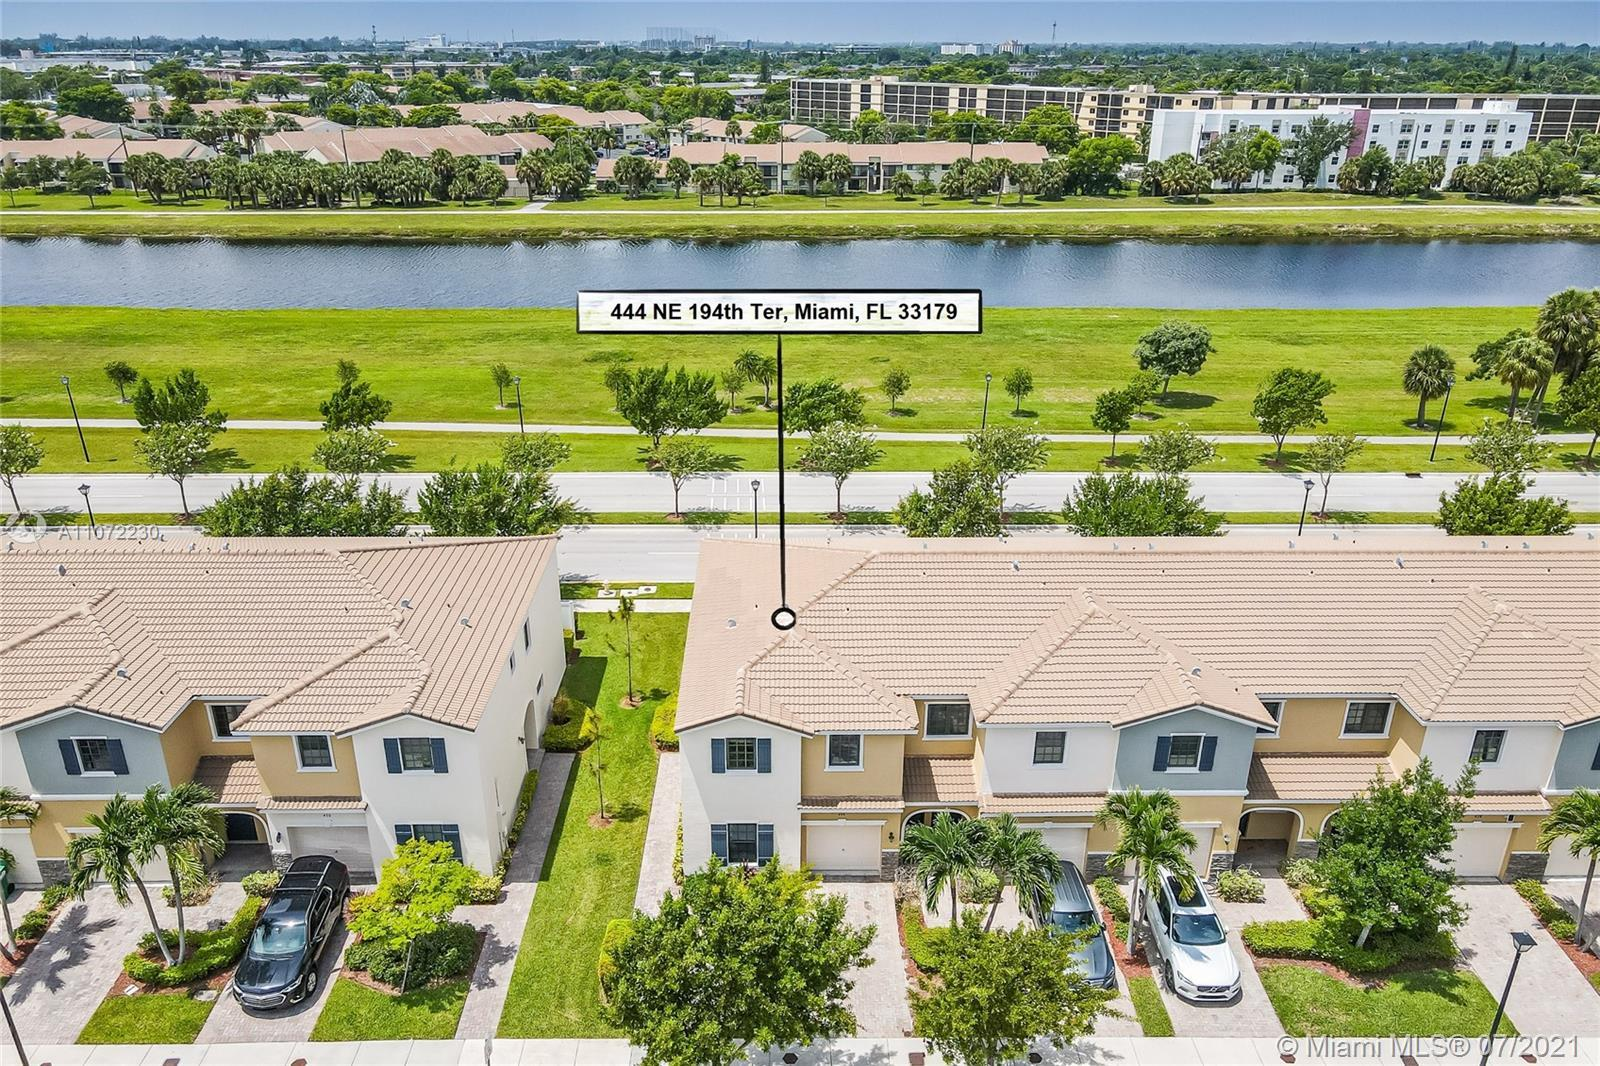 Townhouse in Aventura Isle community. This 2-story home has 4 Bedrooms, 3 Baths. The first floor is